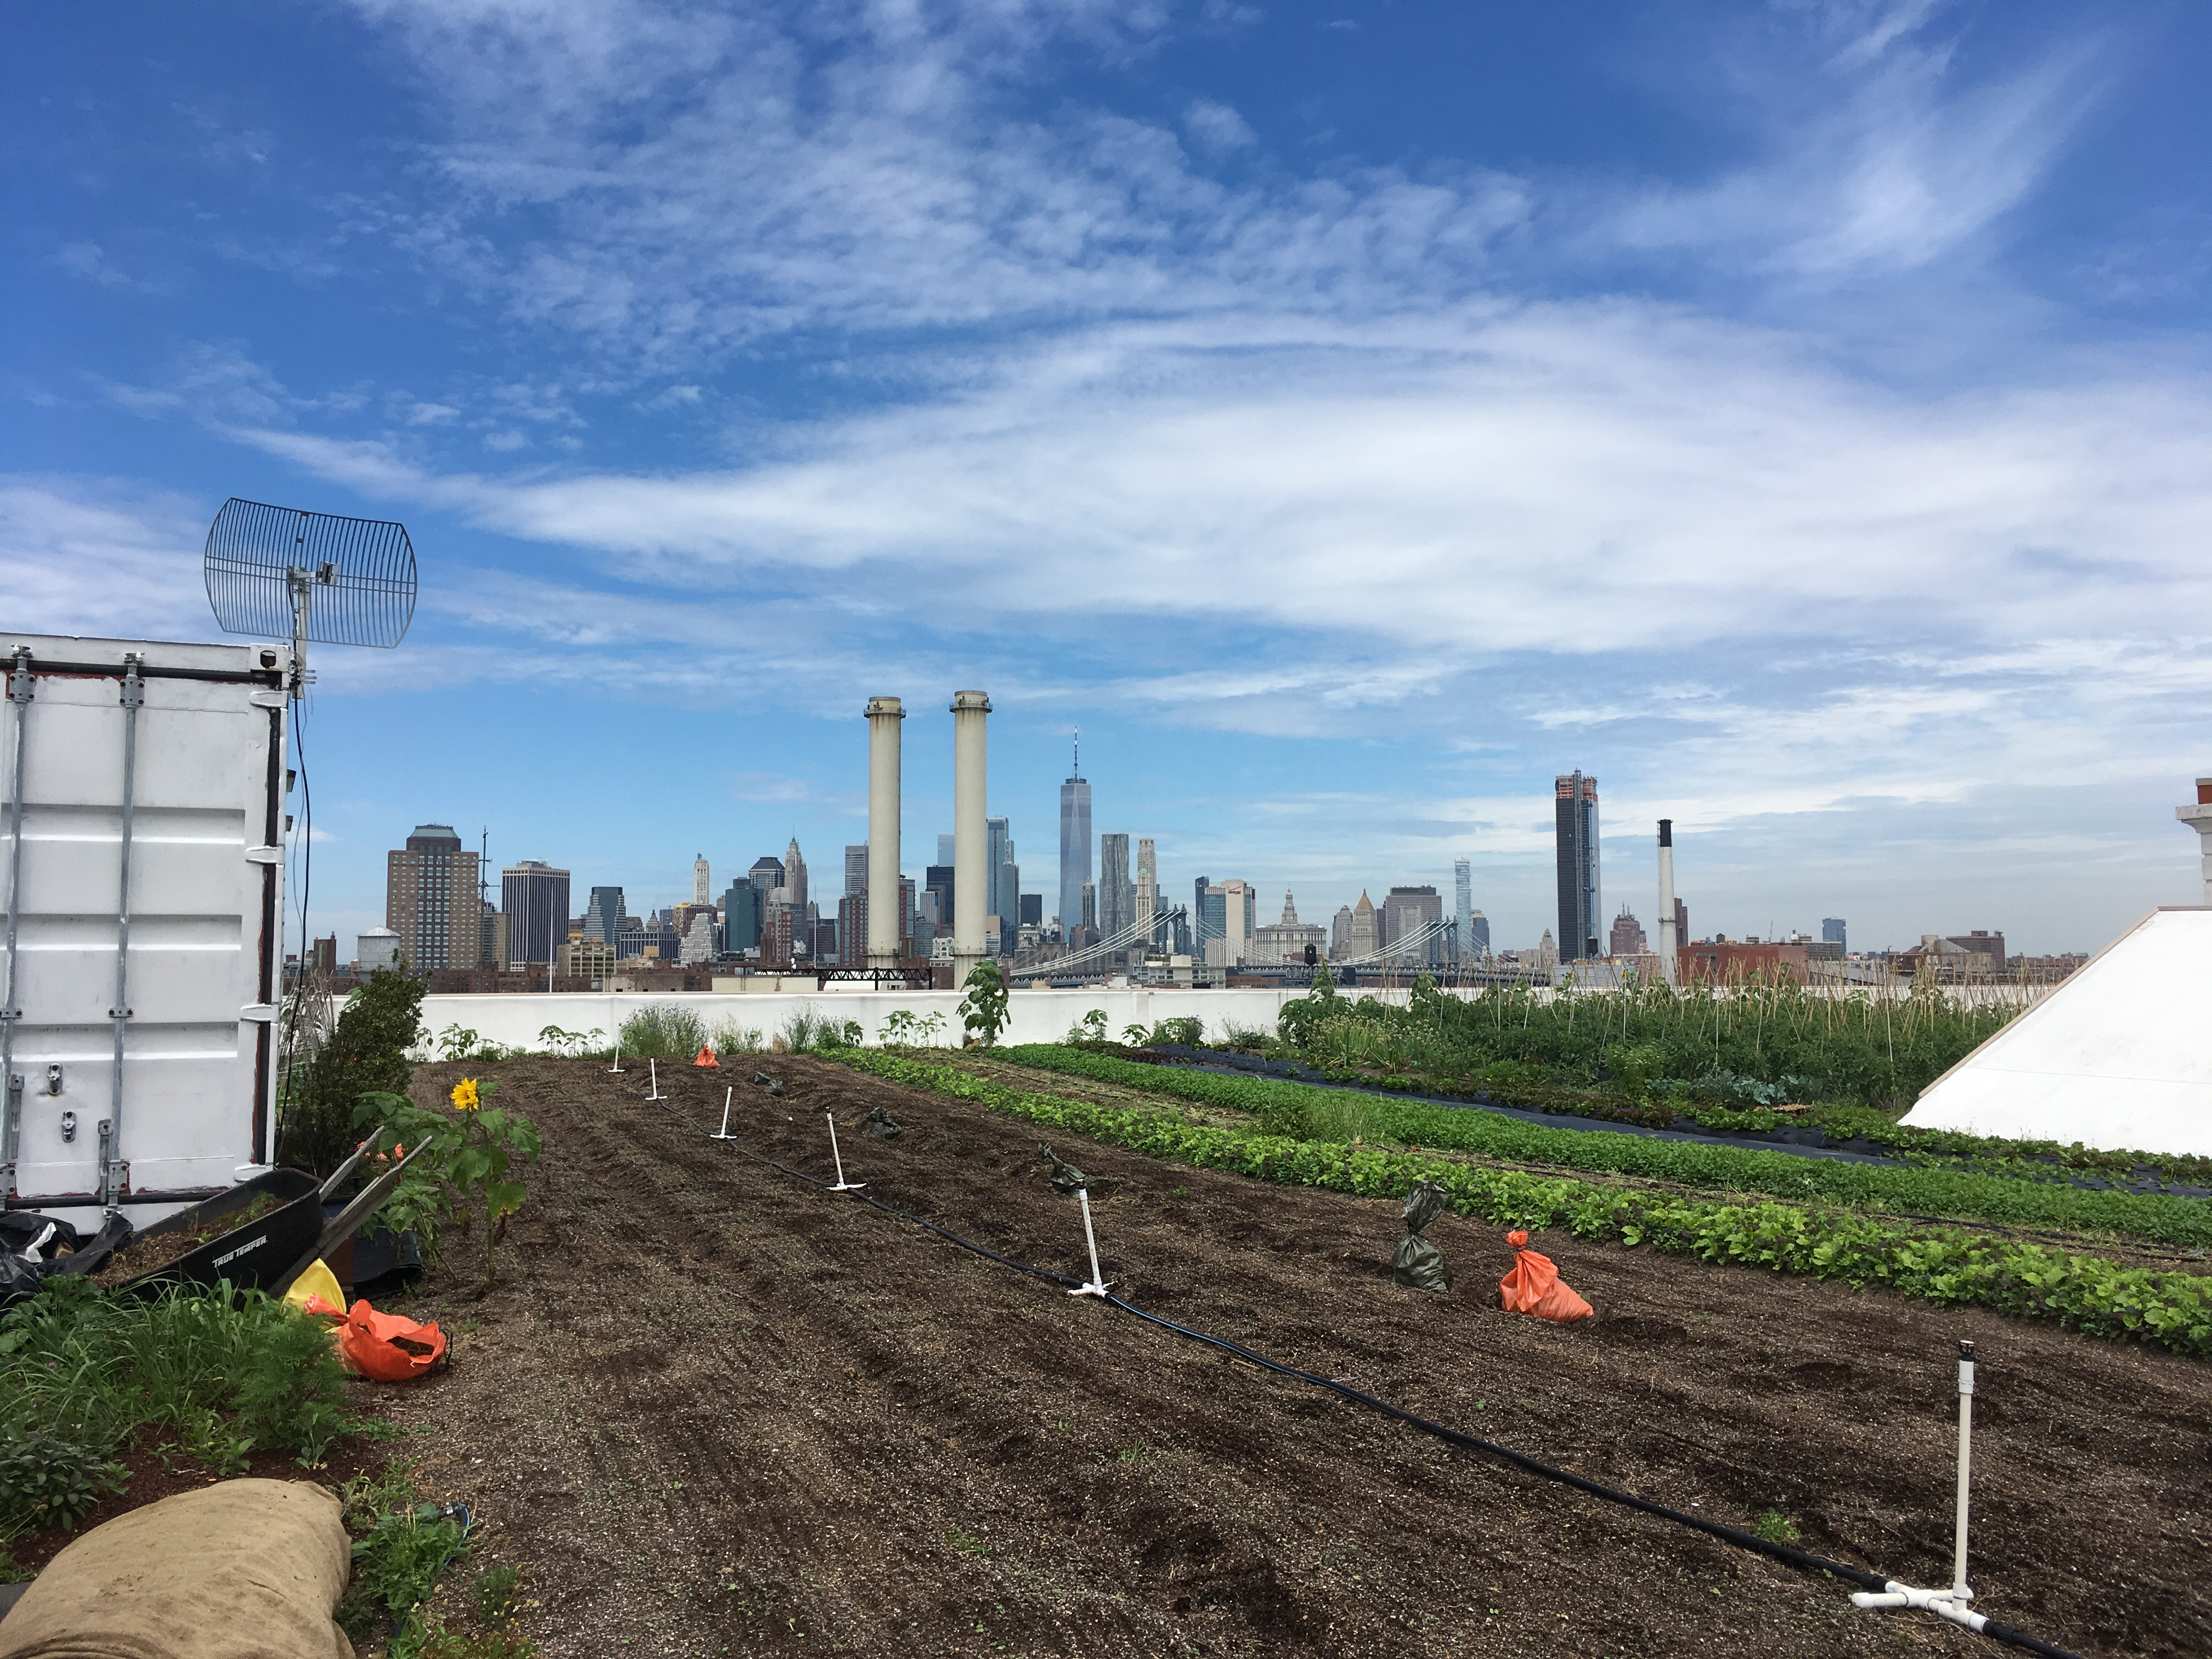 Brooklyn Grange Farm on the Roof NYC June 2018